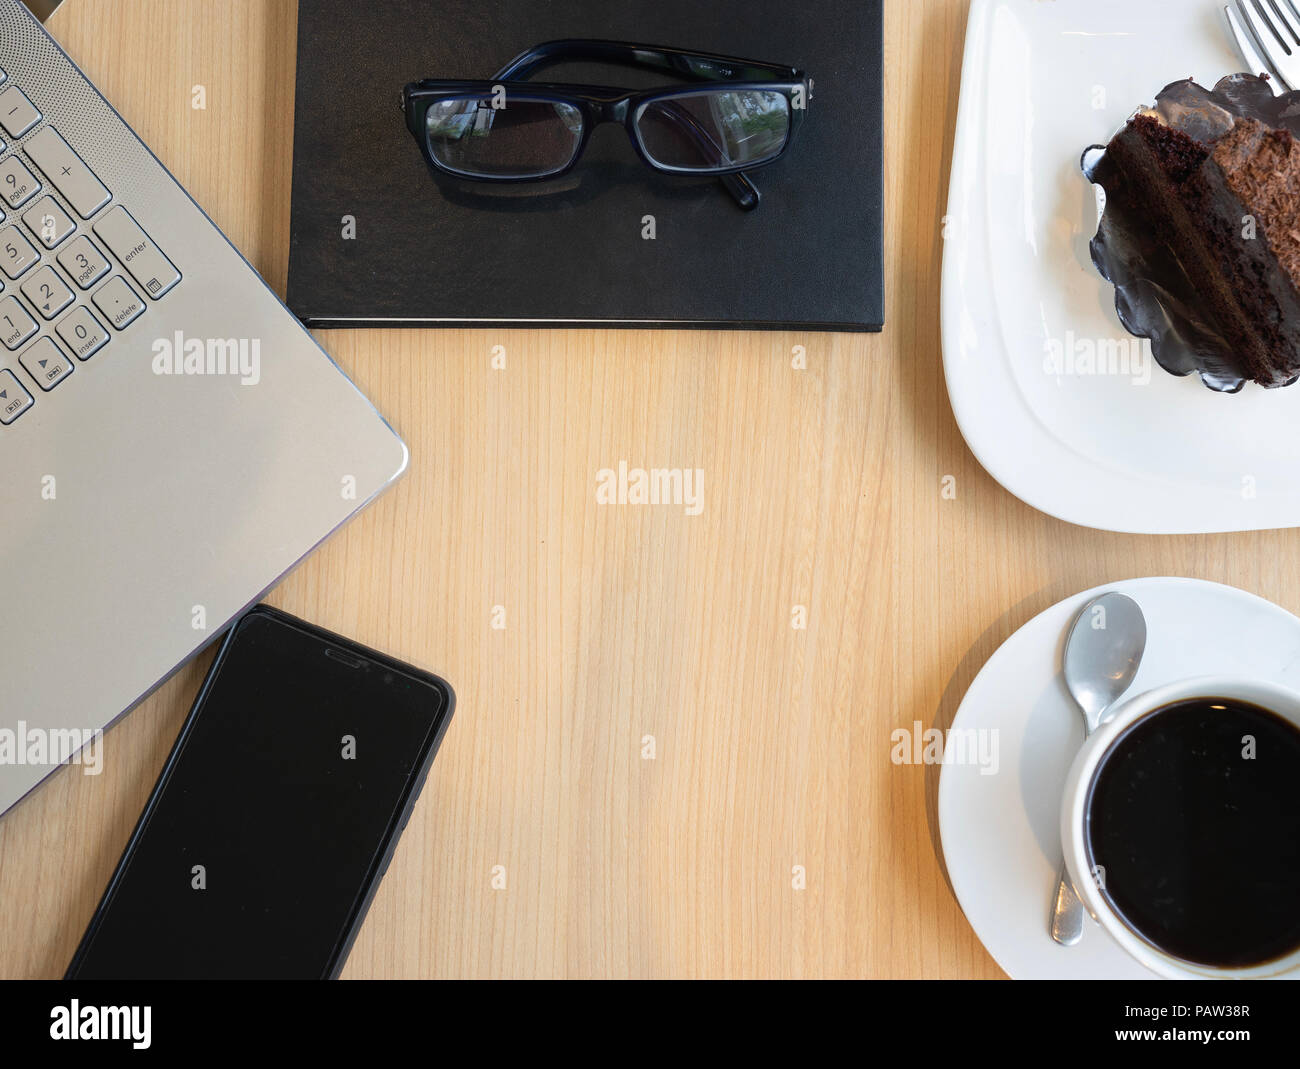 Laptop Mobile Phone Coffee Cup Chocolate Cake And Glasses On Wooden Table Top View With Work Space Design Stock Photo Alamy